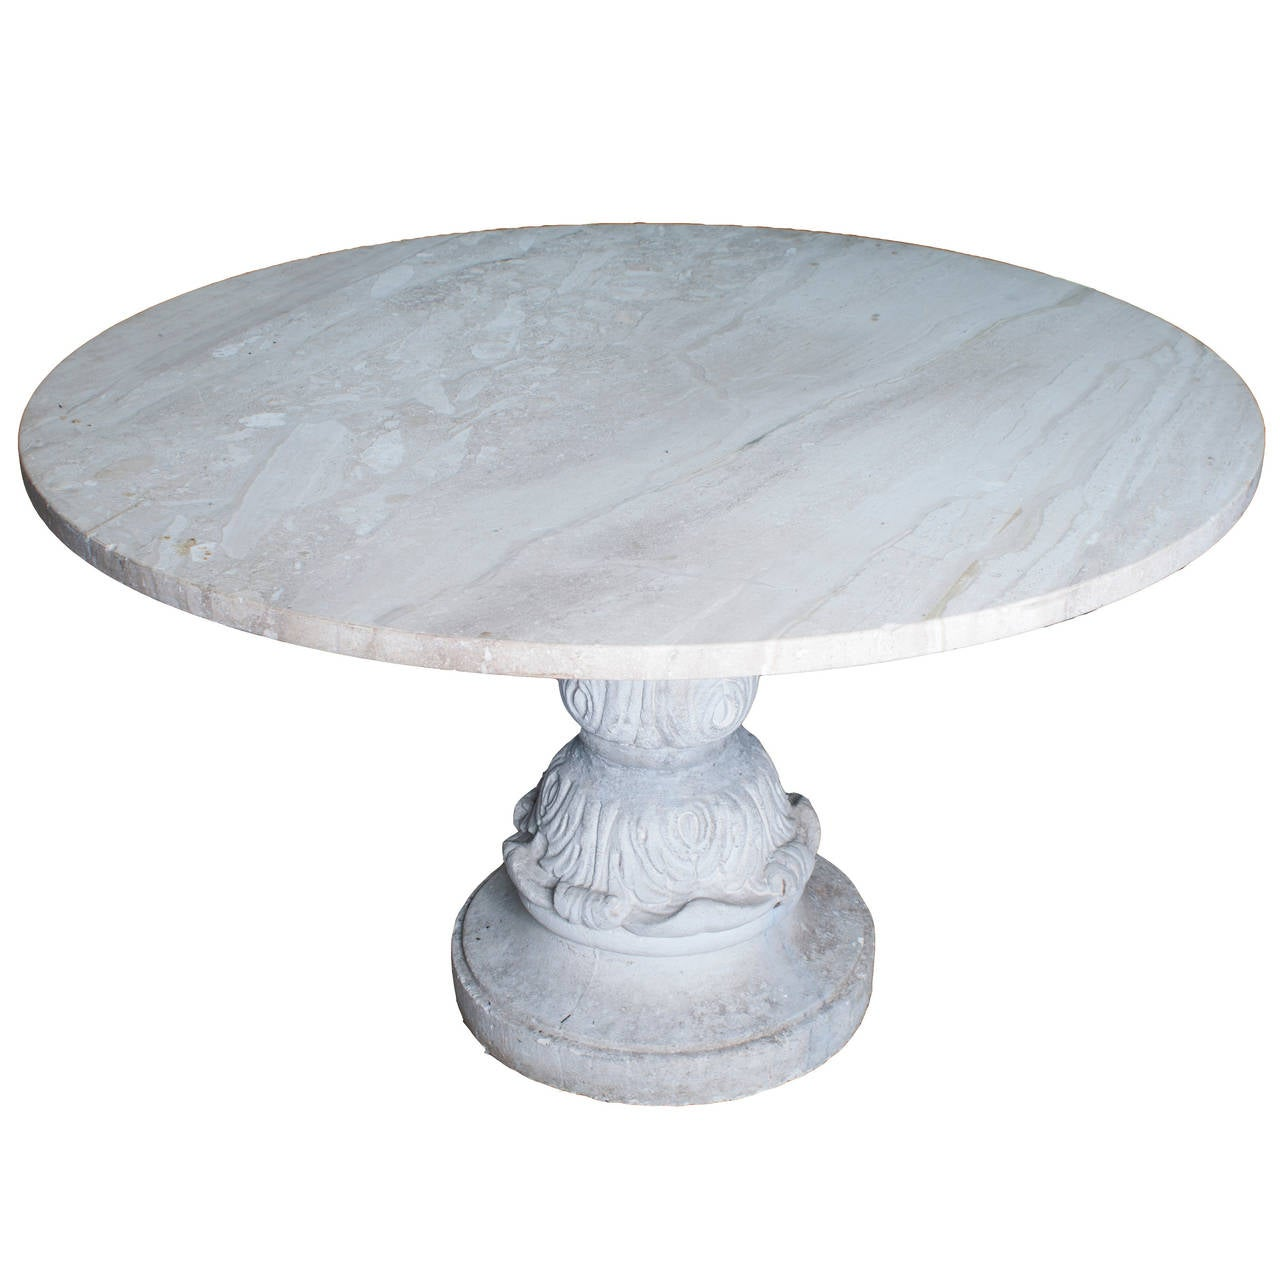 Midcentury Concrete Pedestal Table Base With New Granite